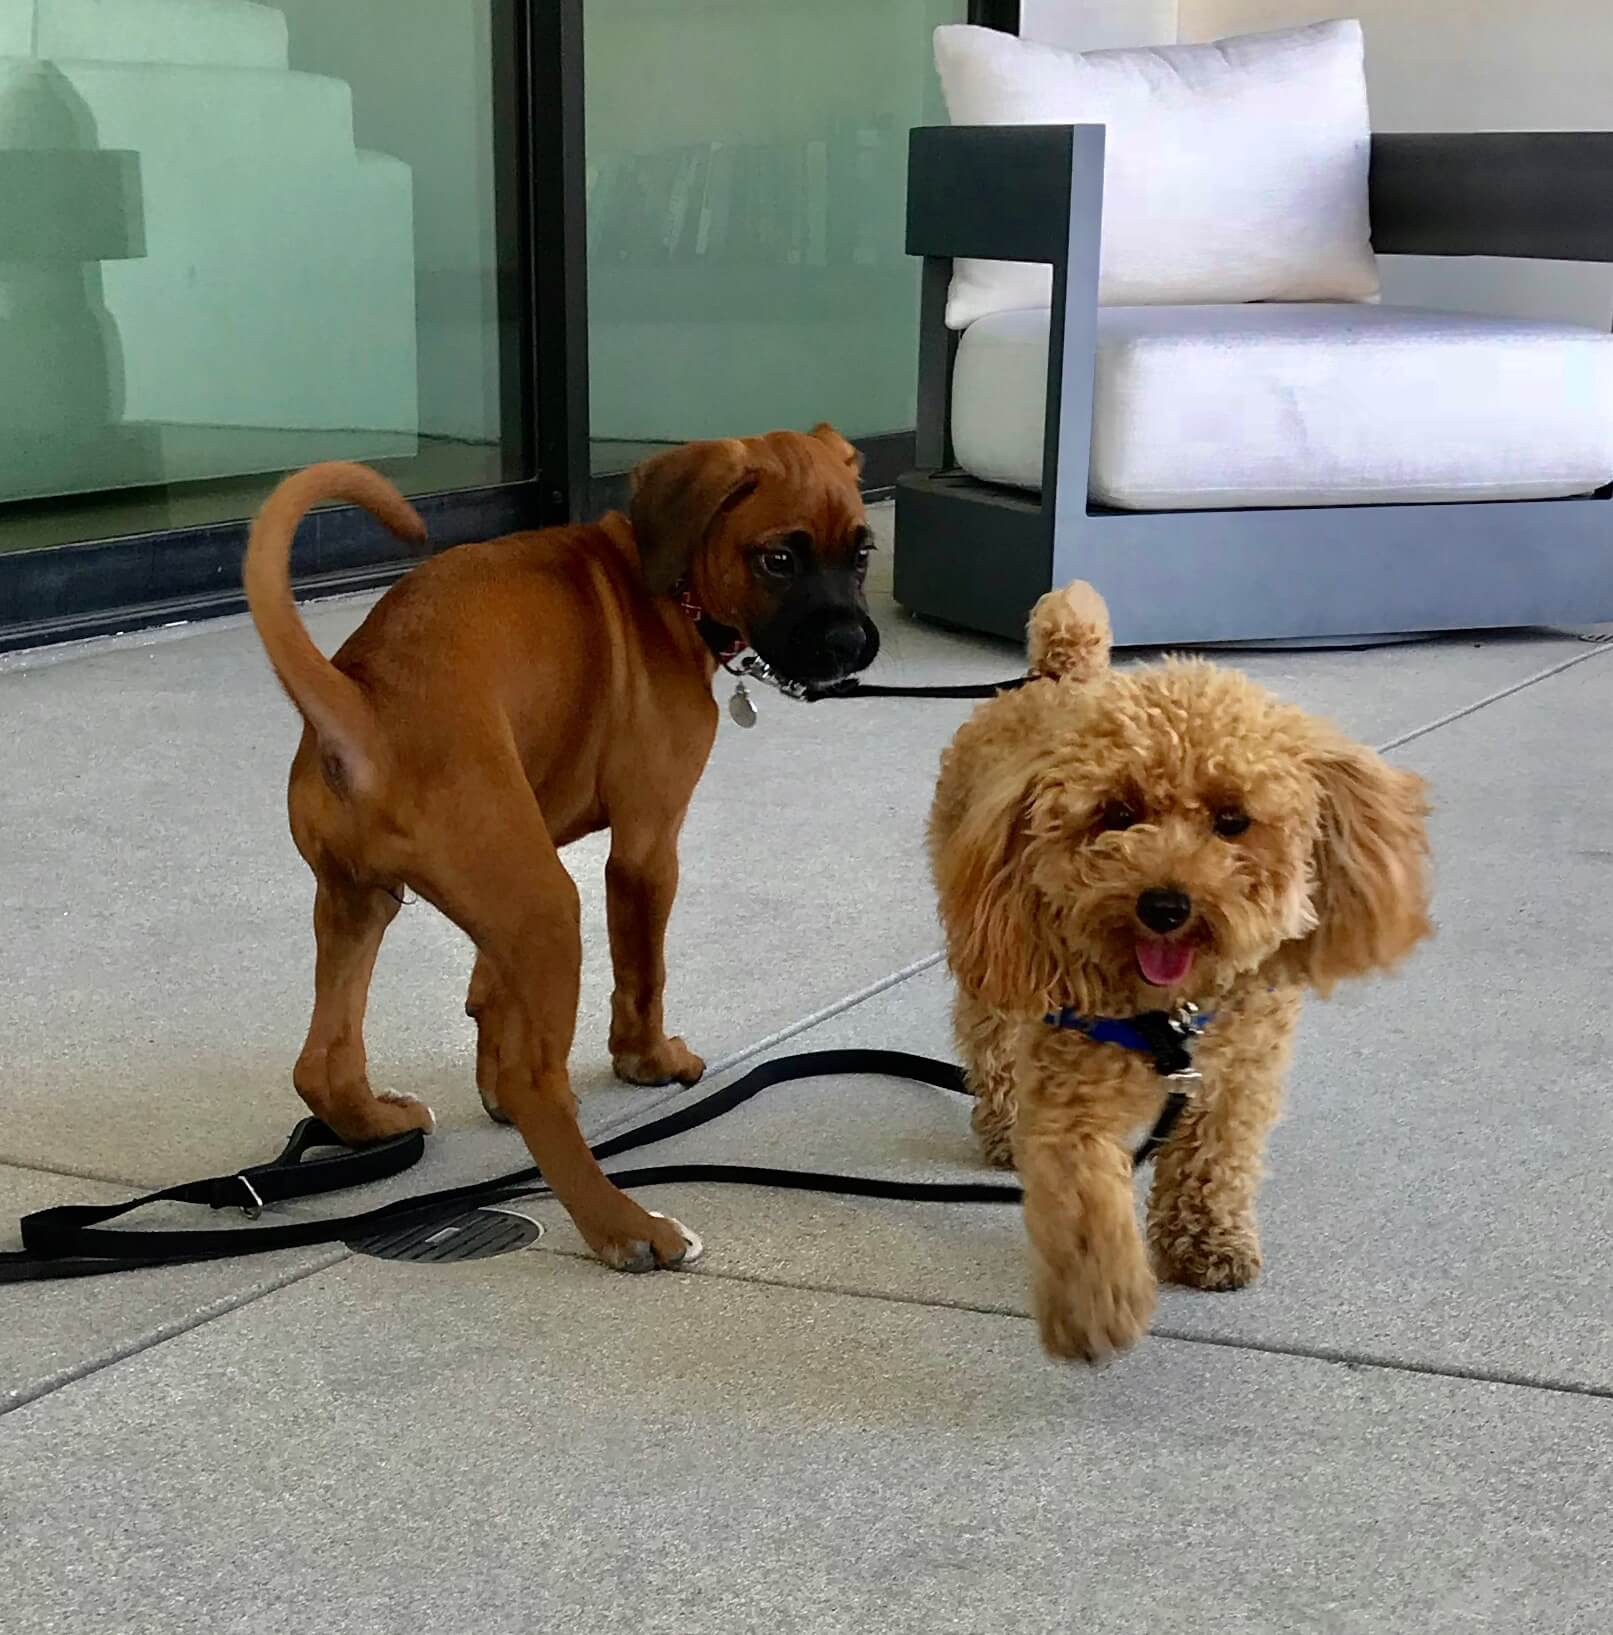 Puppies learn from other puppies and adult dogs about canine communication. That's why it's important to socialize them early so they can learn how to read other dog's body language and signals and feel comfortable around other dogs.